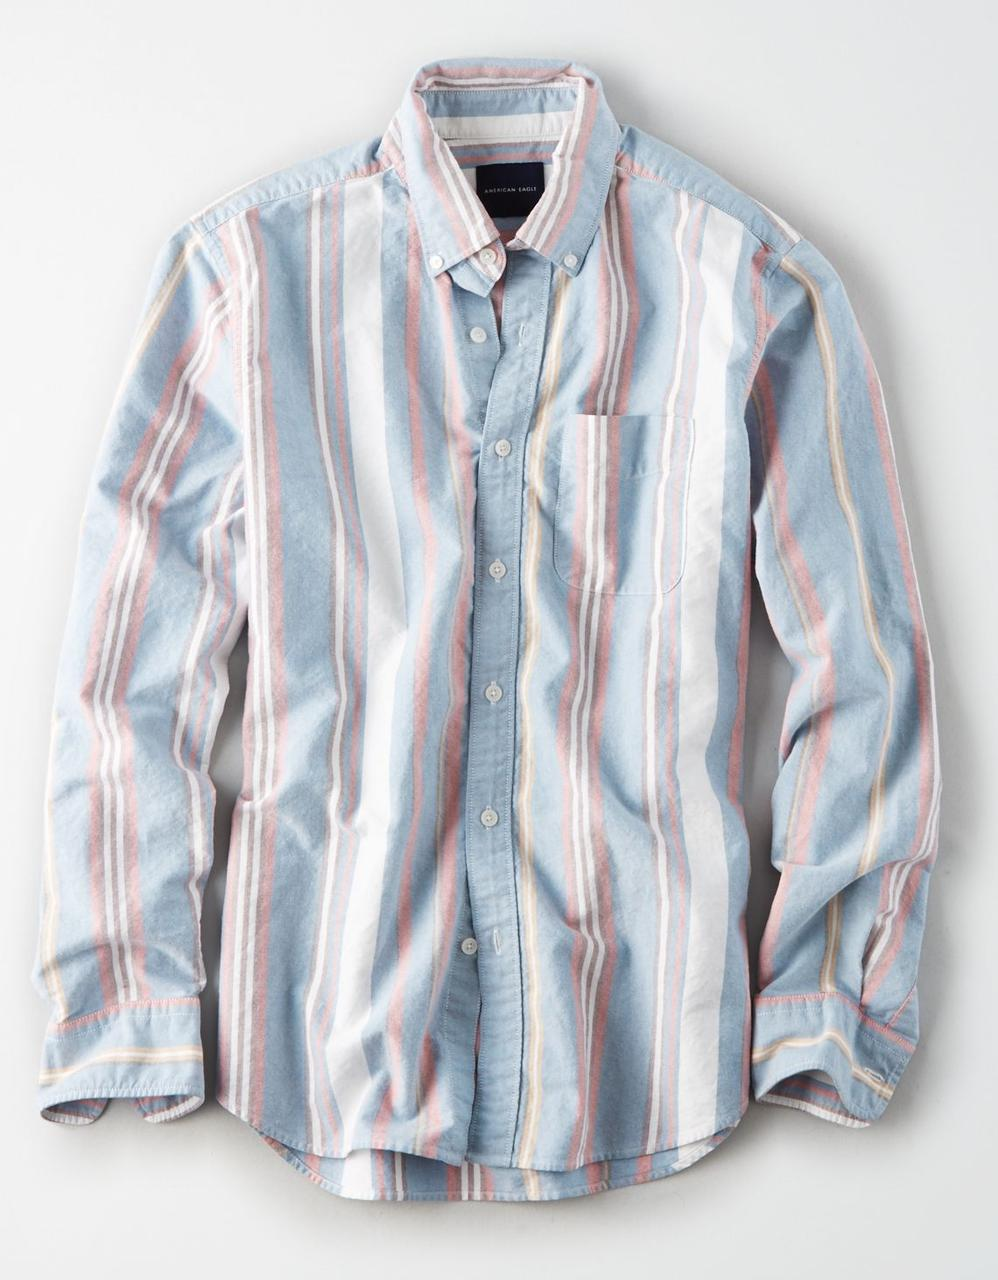 a21559c3 American Eagle Shirts, AE OXFORD STRIPE BUTTON-DOWN SHIRT for Men at ...